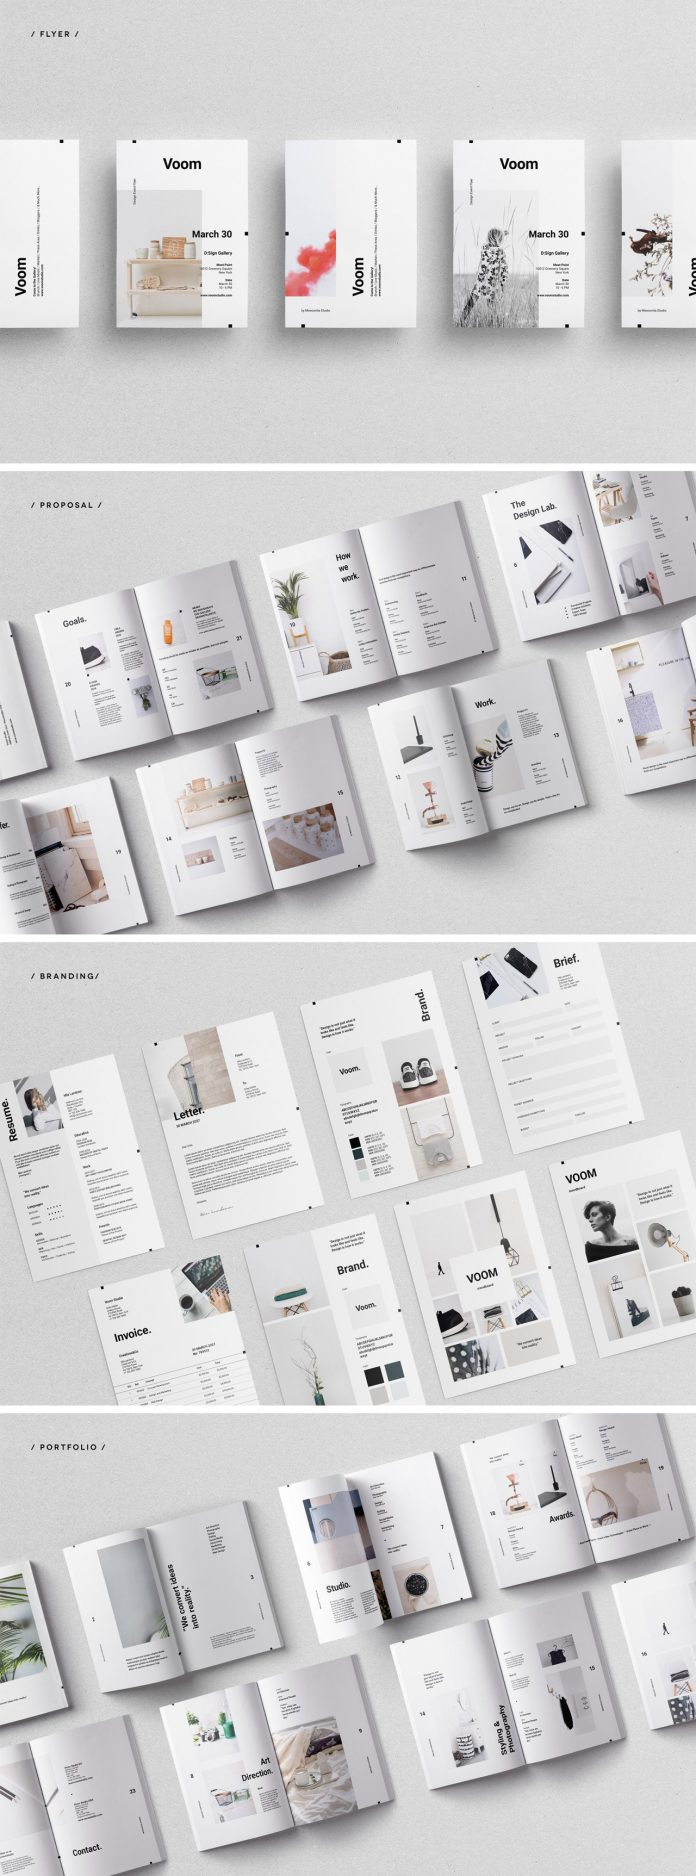 Voom Graphic Design & Branding InDesign Kit for the Perfect Pitch